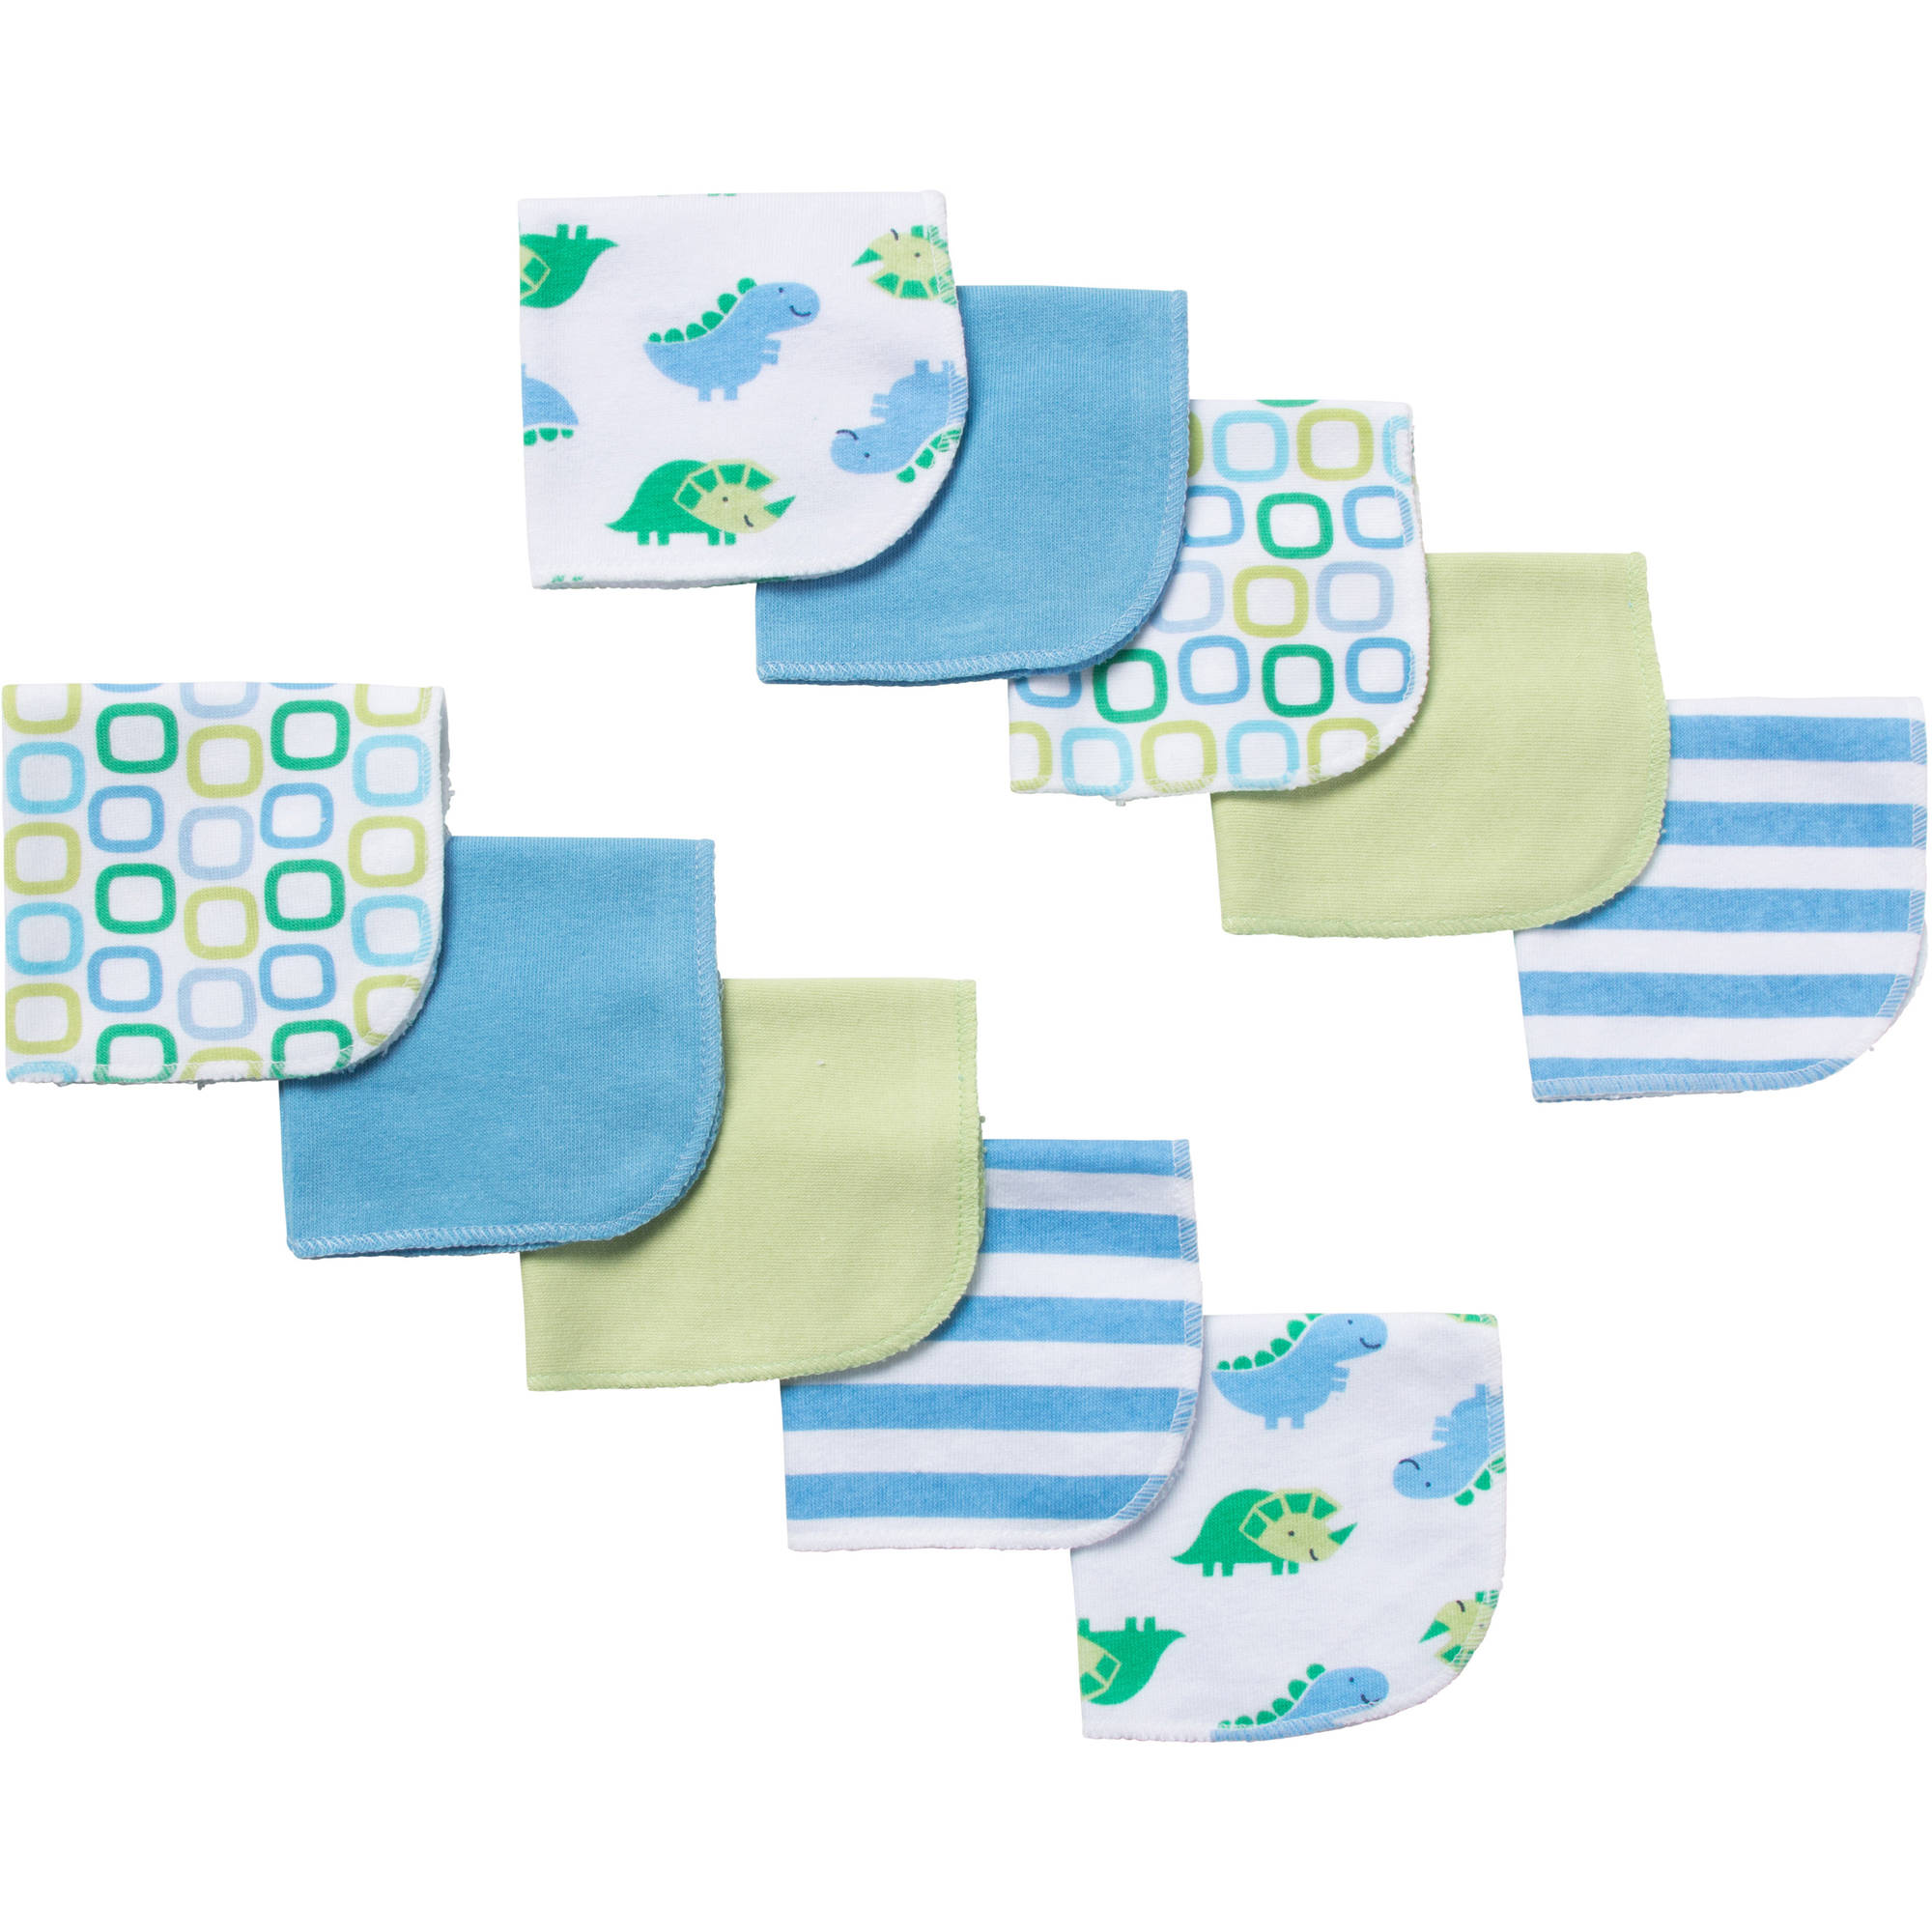 Gerber Newborn Baby Boy Terry Printed Dinosaur Washcloths - 10 pack